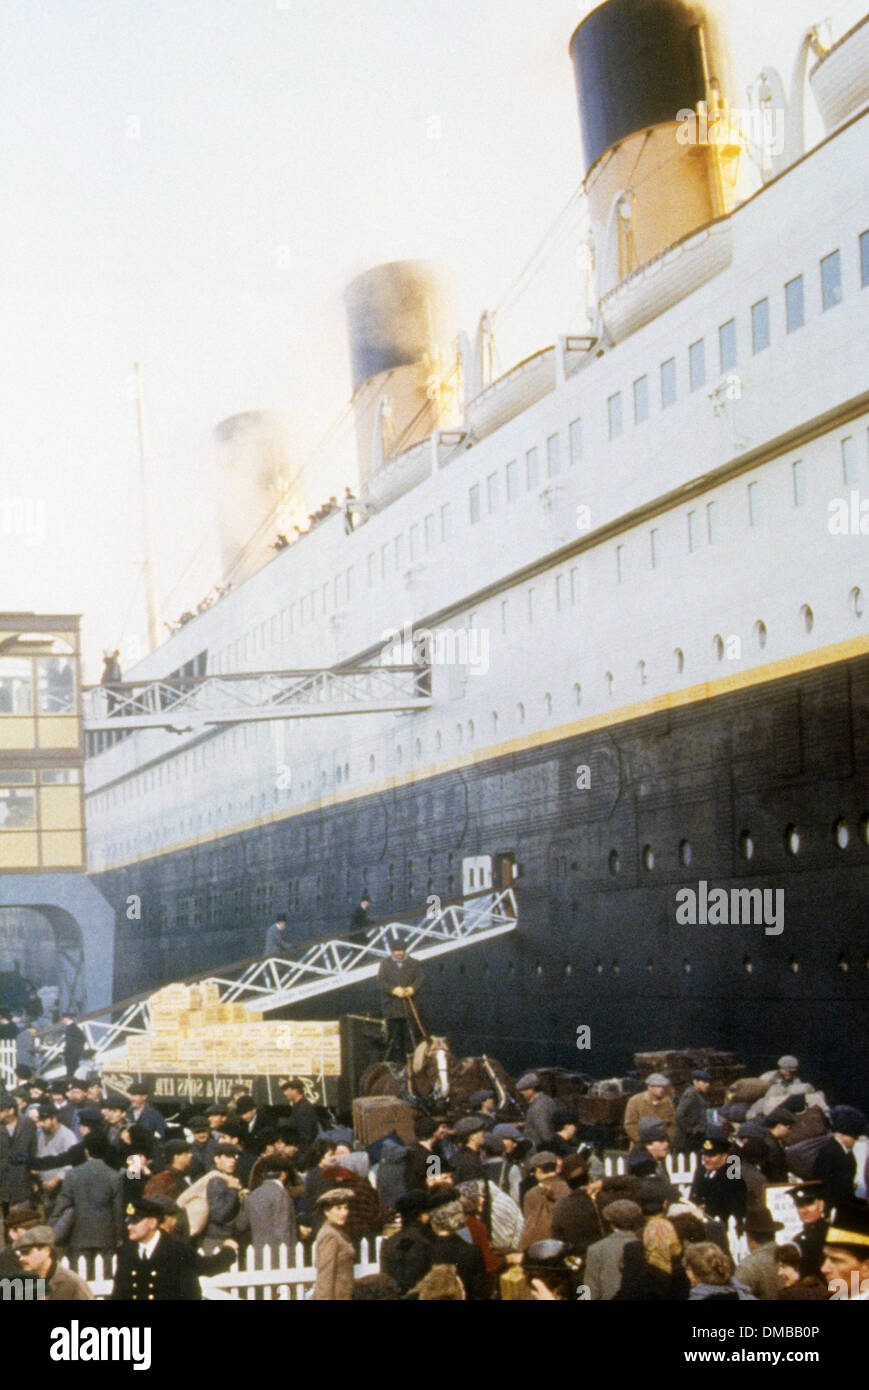 TITANIC 1997 Twentieth Century Fox film Stockbild